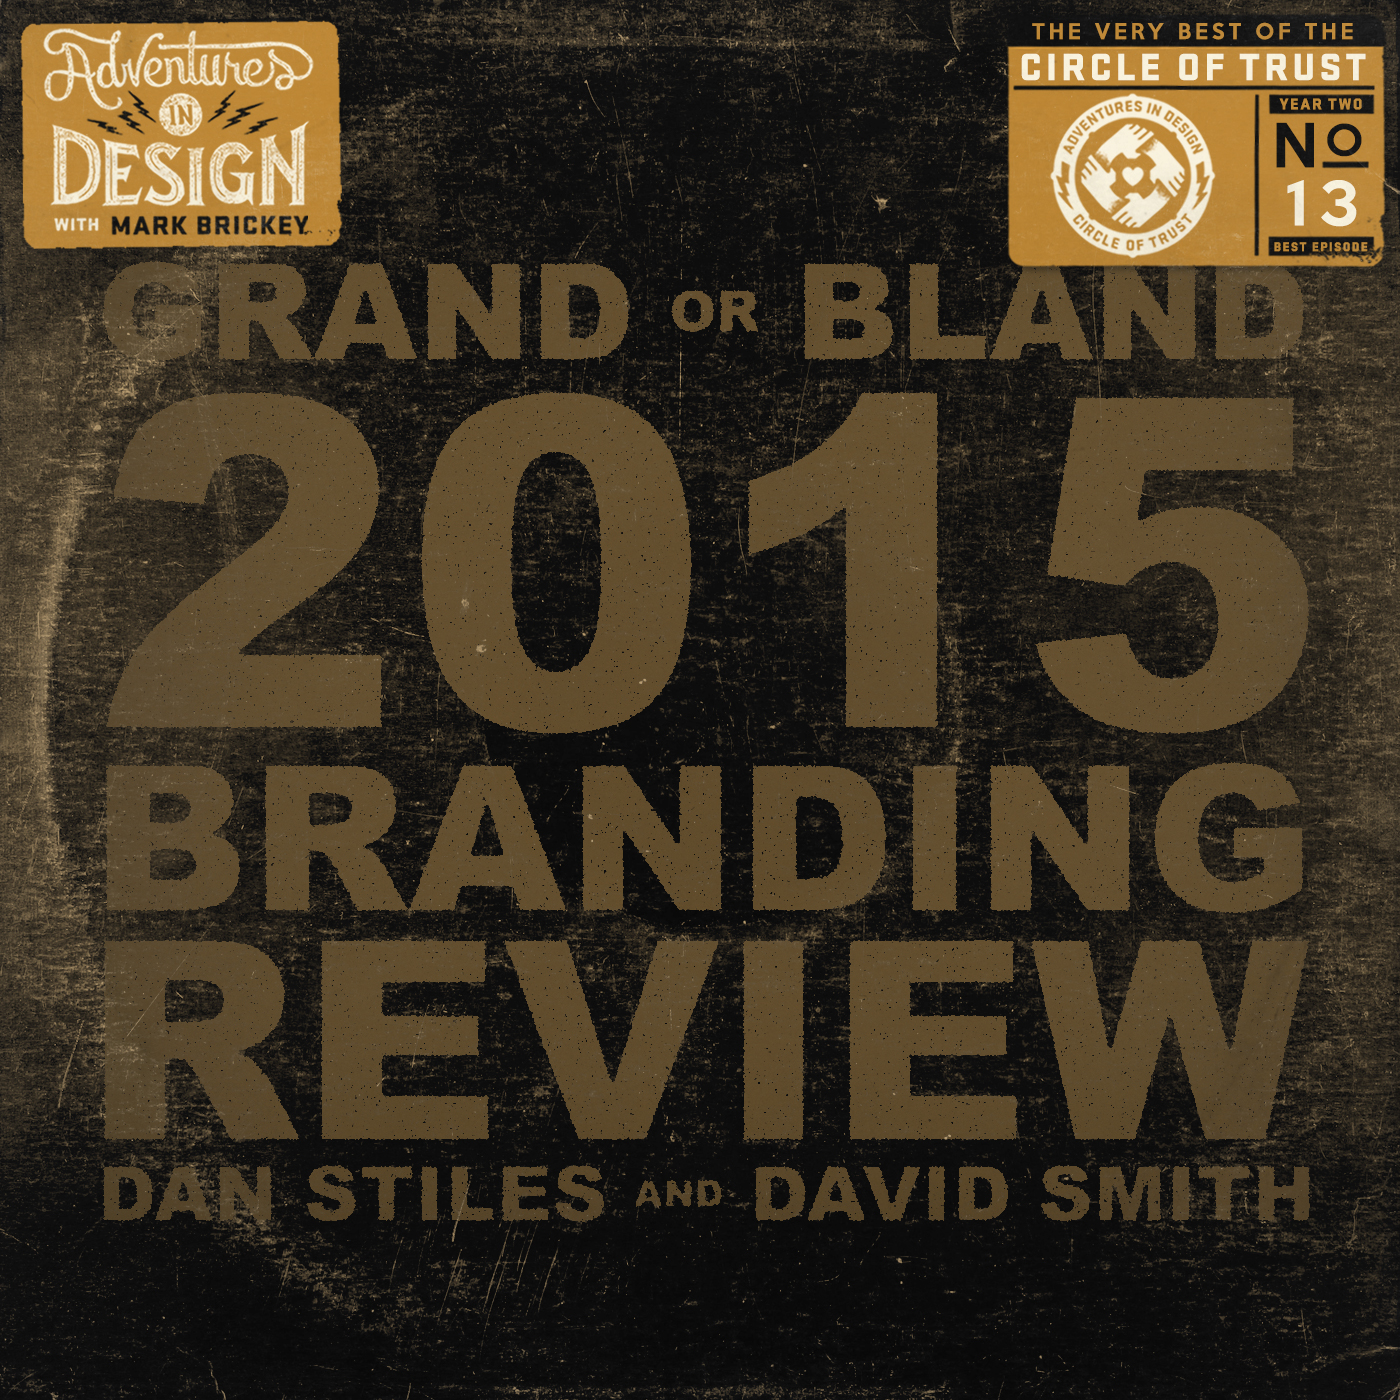 The Best Of The Circle Of Trust Year Two: Grand Or Bland: The 2015 Branding Review with Dan Stiles and David Smith